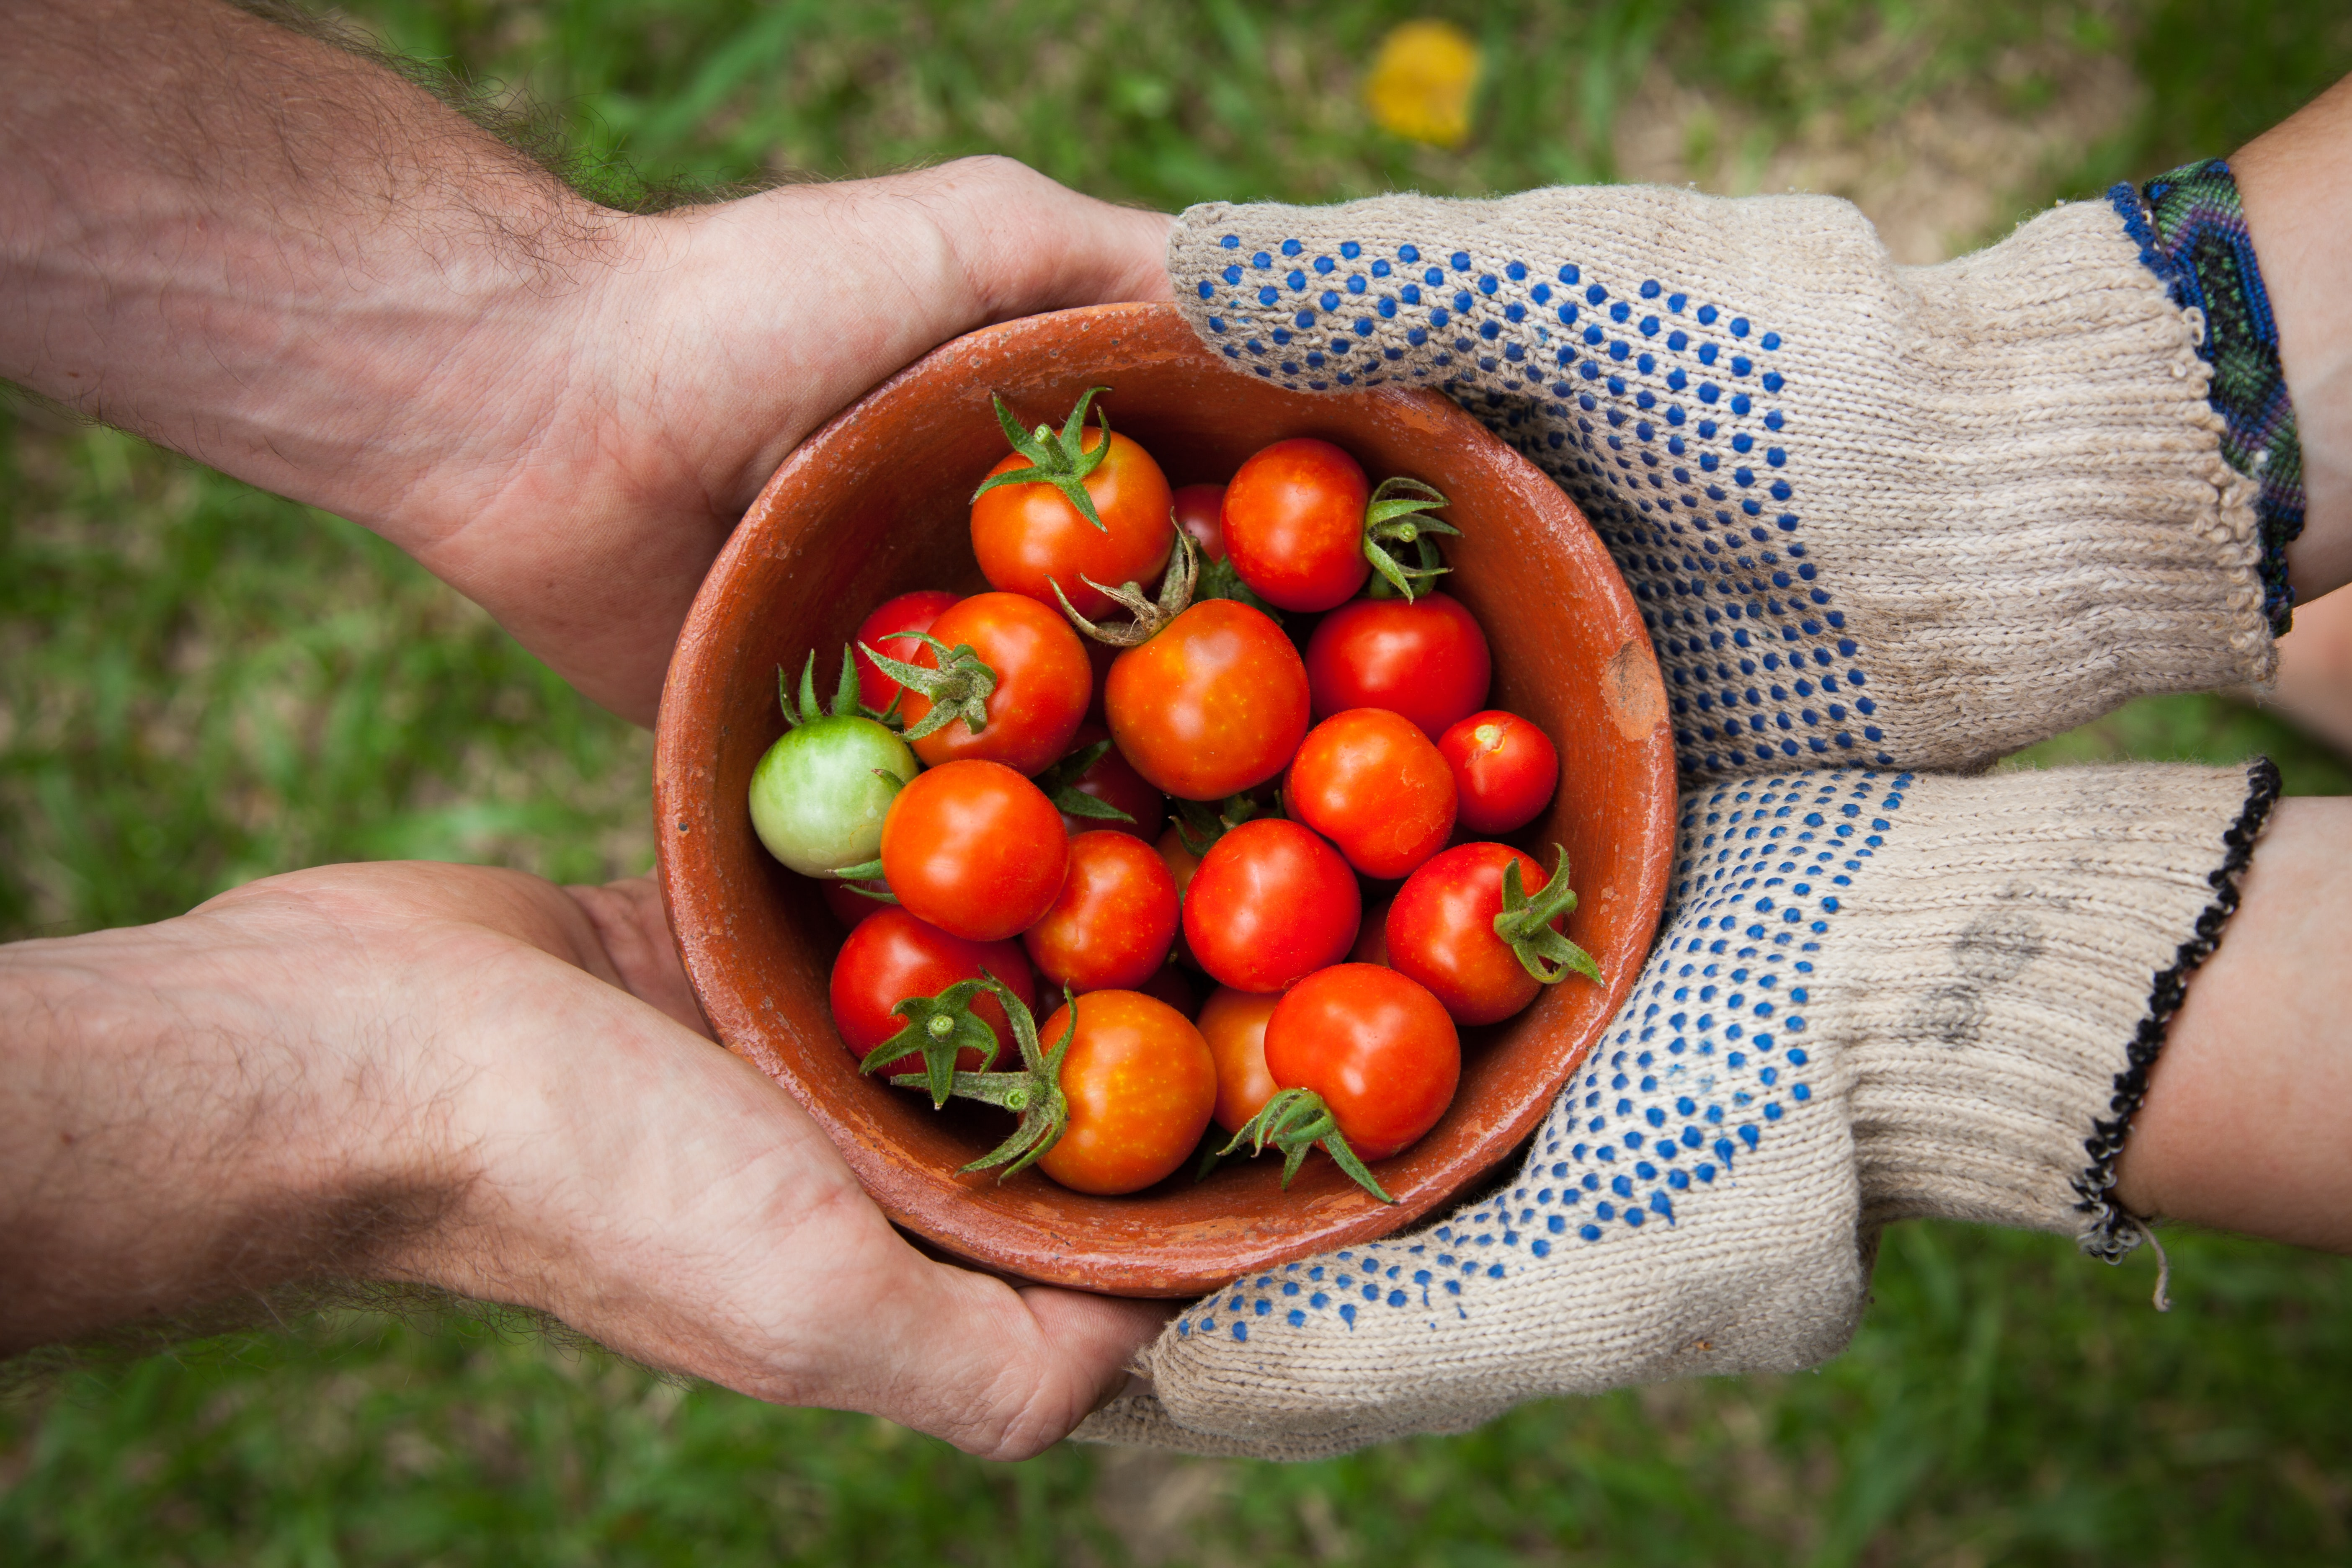 A close up of a small bowl of cherry tomatoes and two people holding the bowl together.